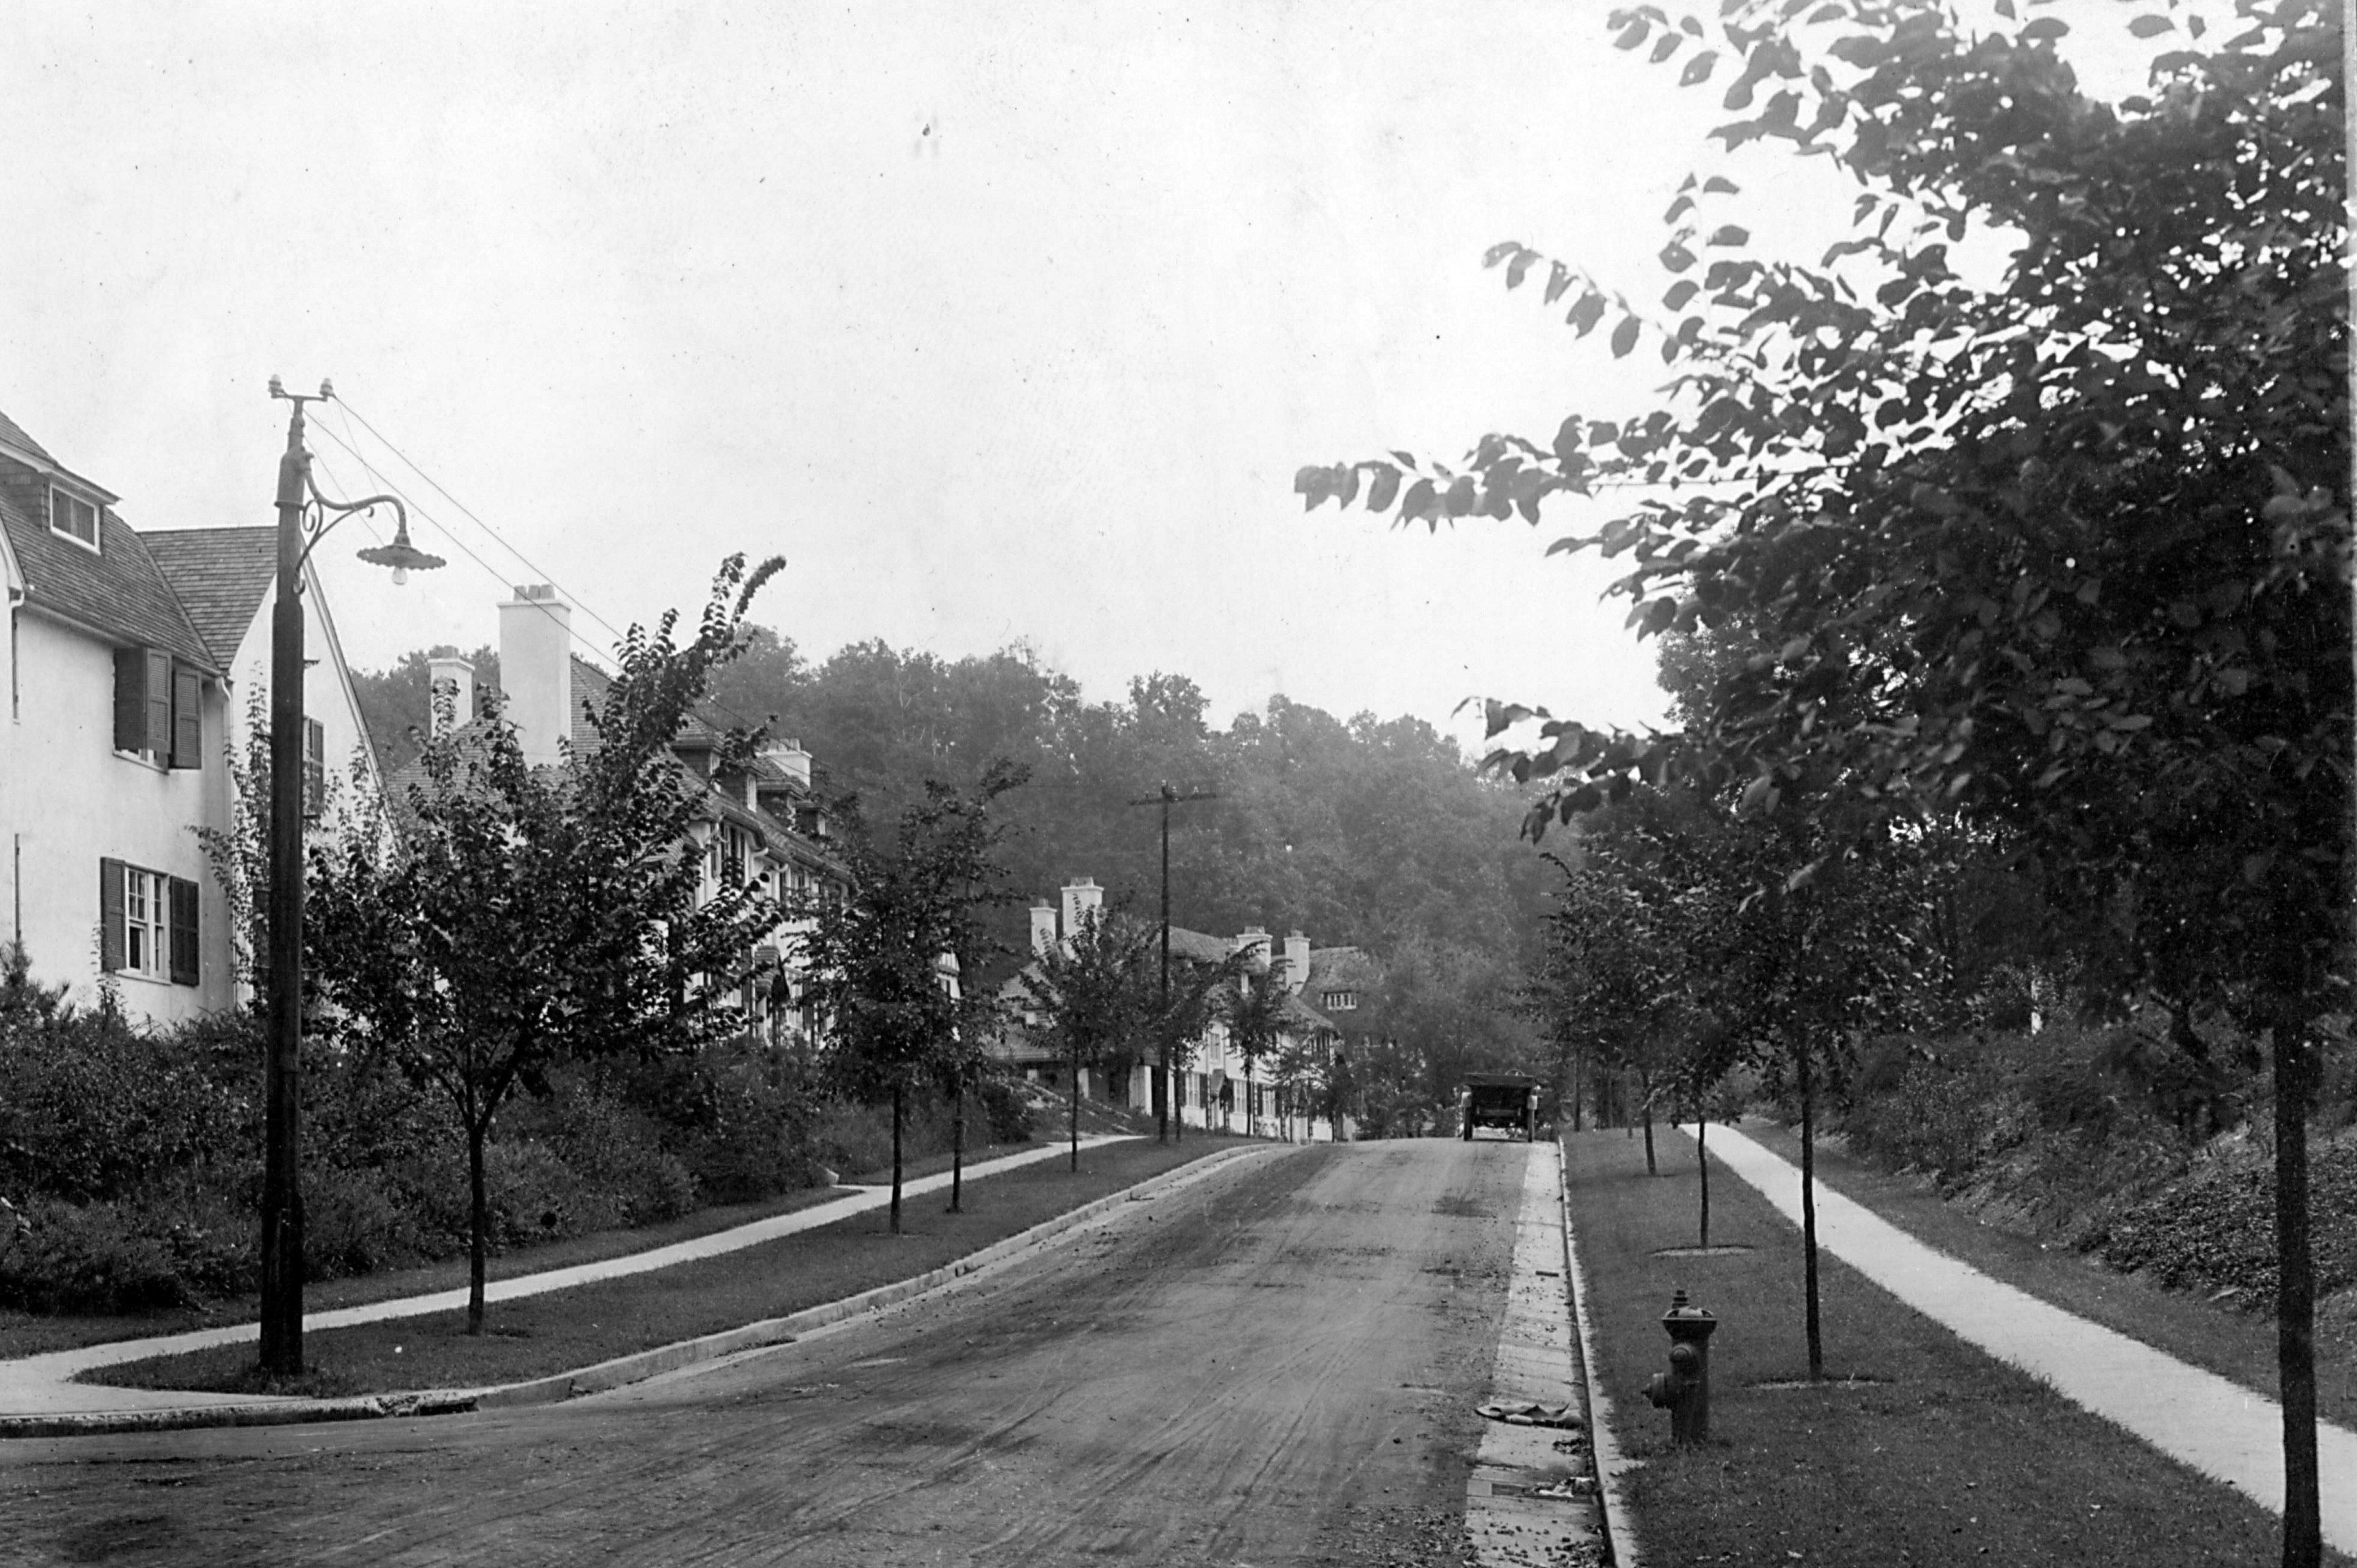 Historic black and white photo of Roland Park, Baltimore, Designed by Frederick Law Olmsted Jr c. 1900